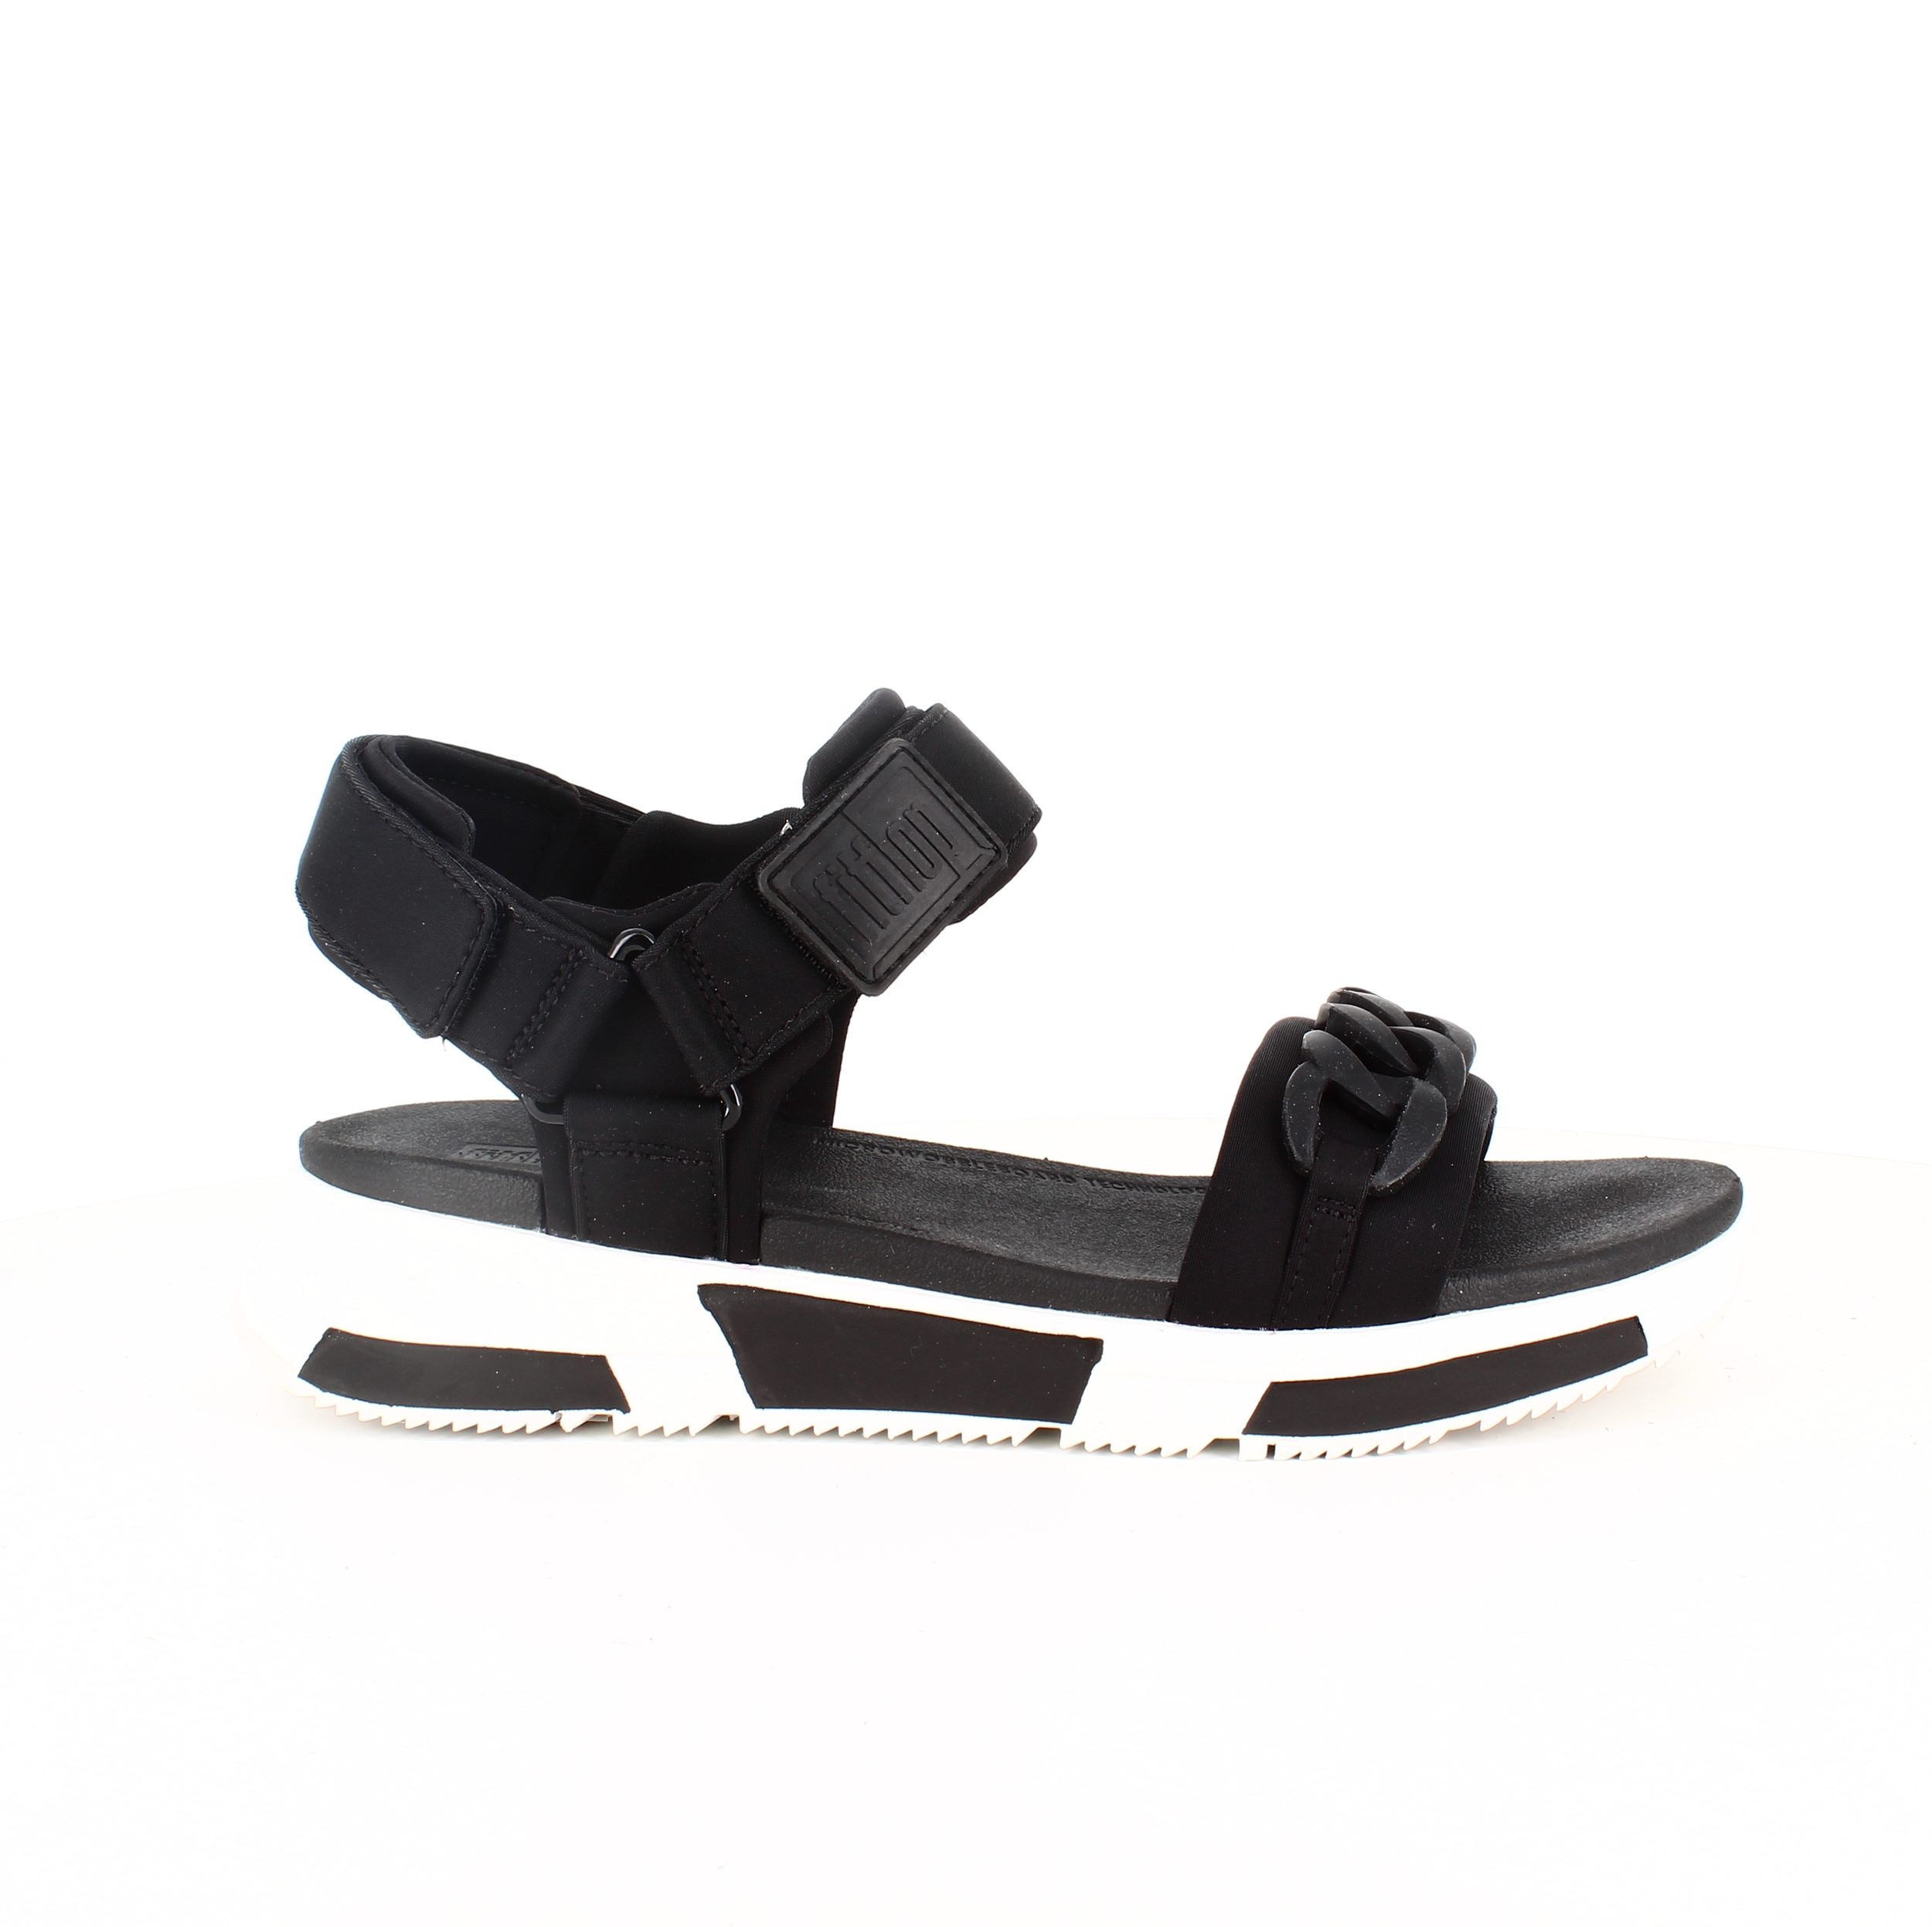 Image of   Heda Back strap sandal fra Fit flop - 42